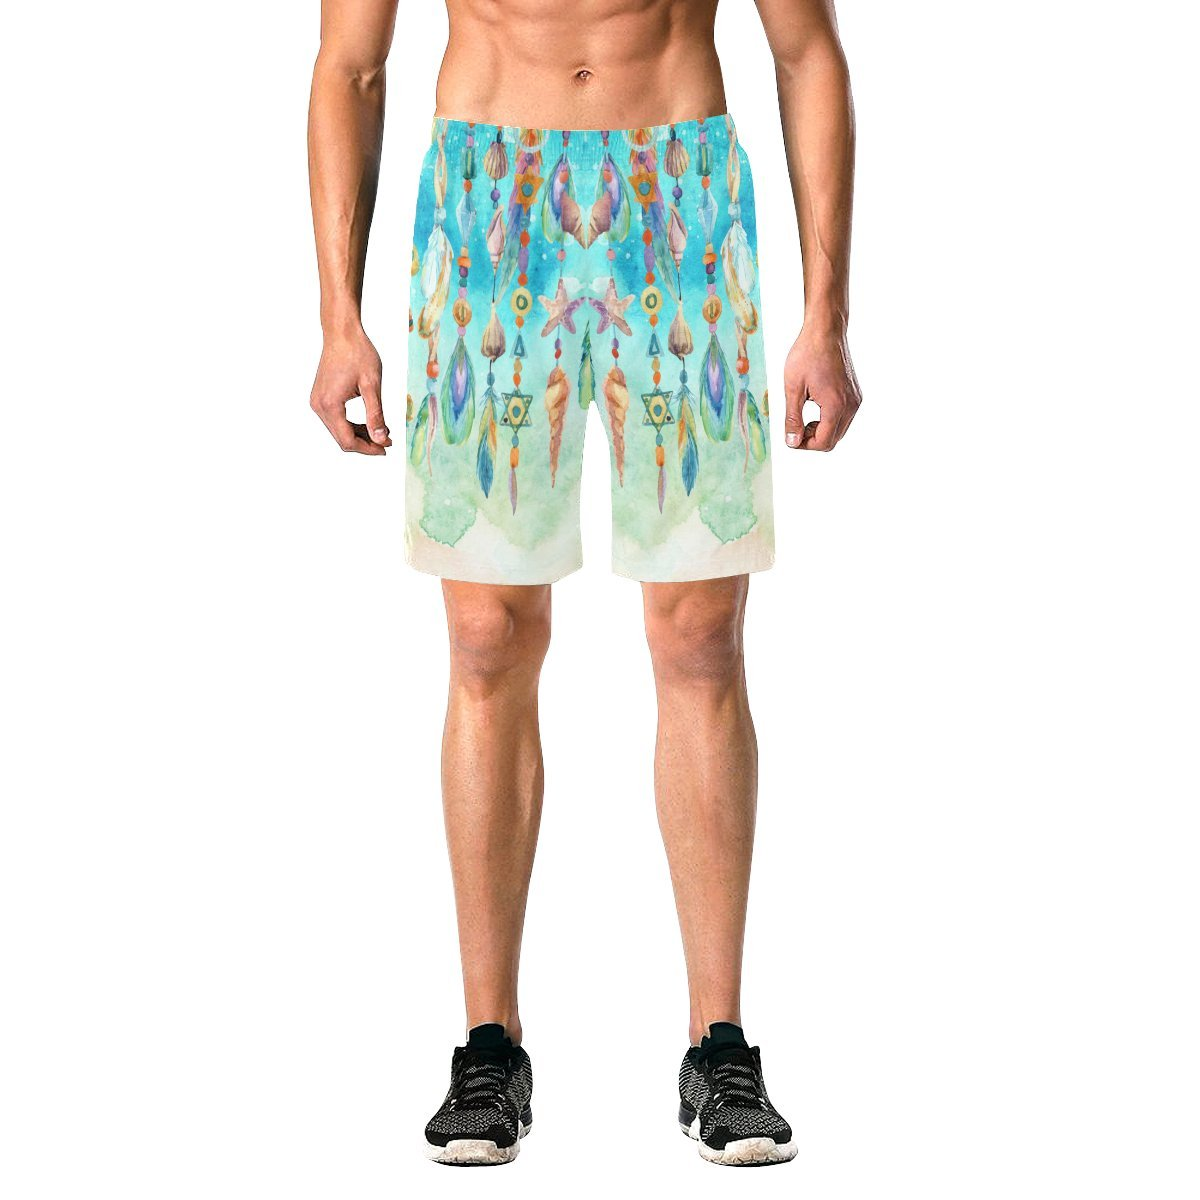 InterestPrint Watercolor Jewellery Sea Shells Beads Feathers Sea Sand Men's Casual Quick Dry Swim Trunks Beach Shorts Board Shorts with Pockets, Mesh Lining S